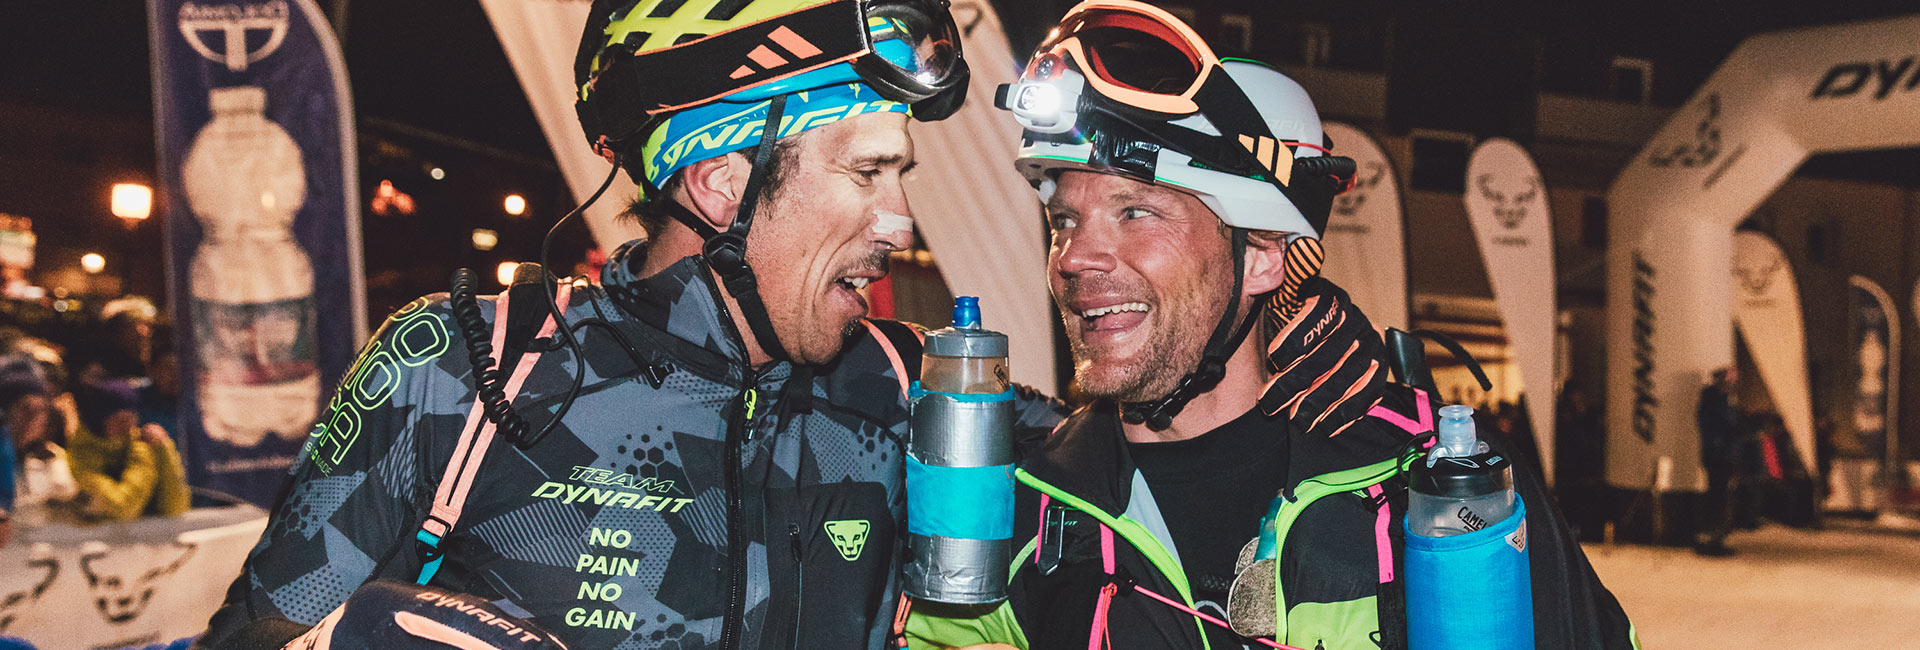 Sellaronda: finish line